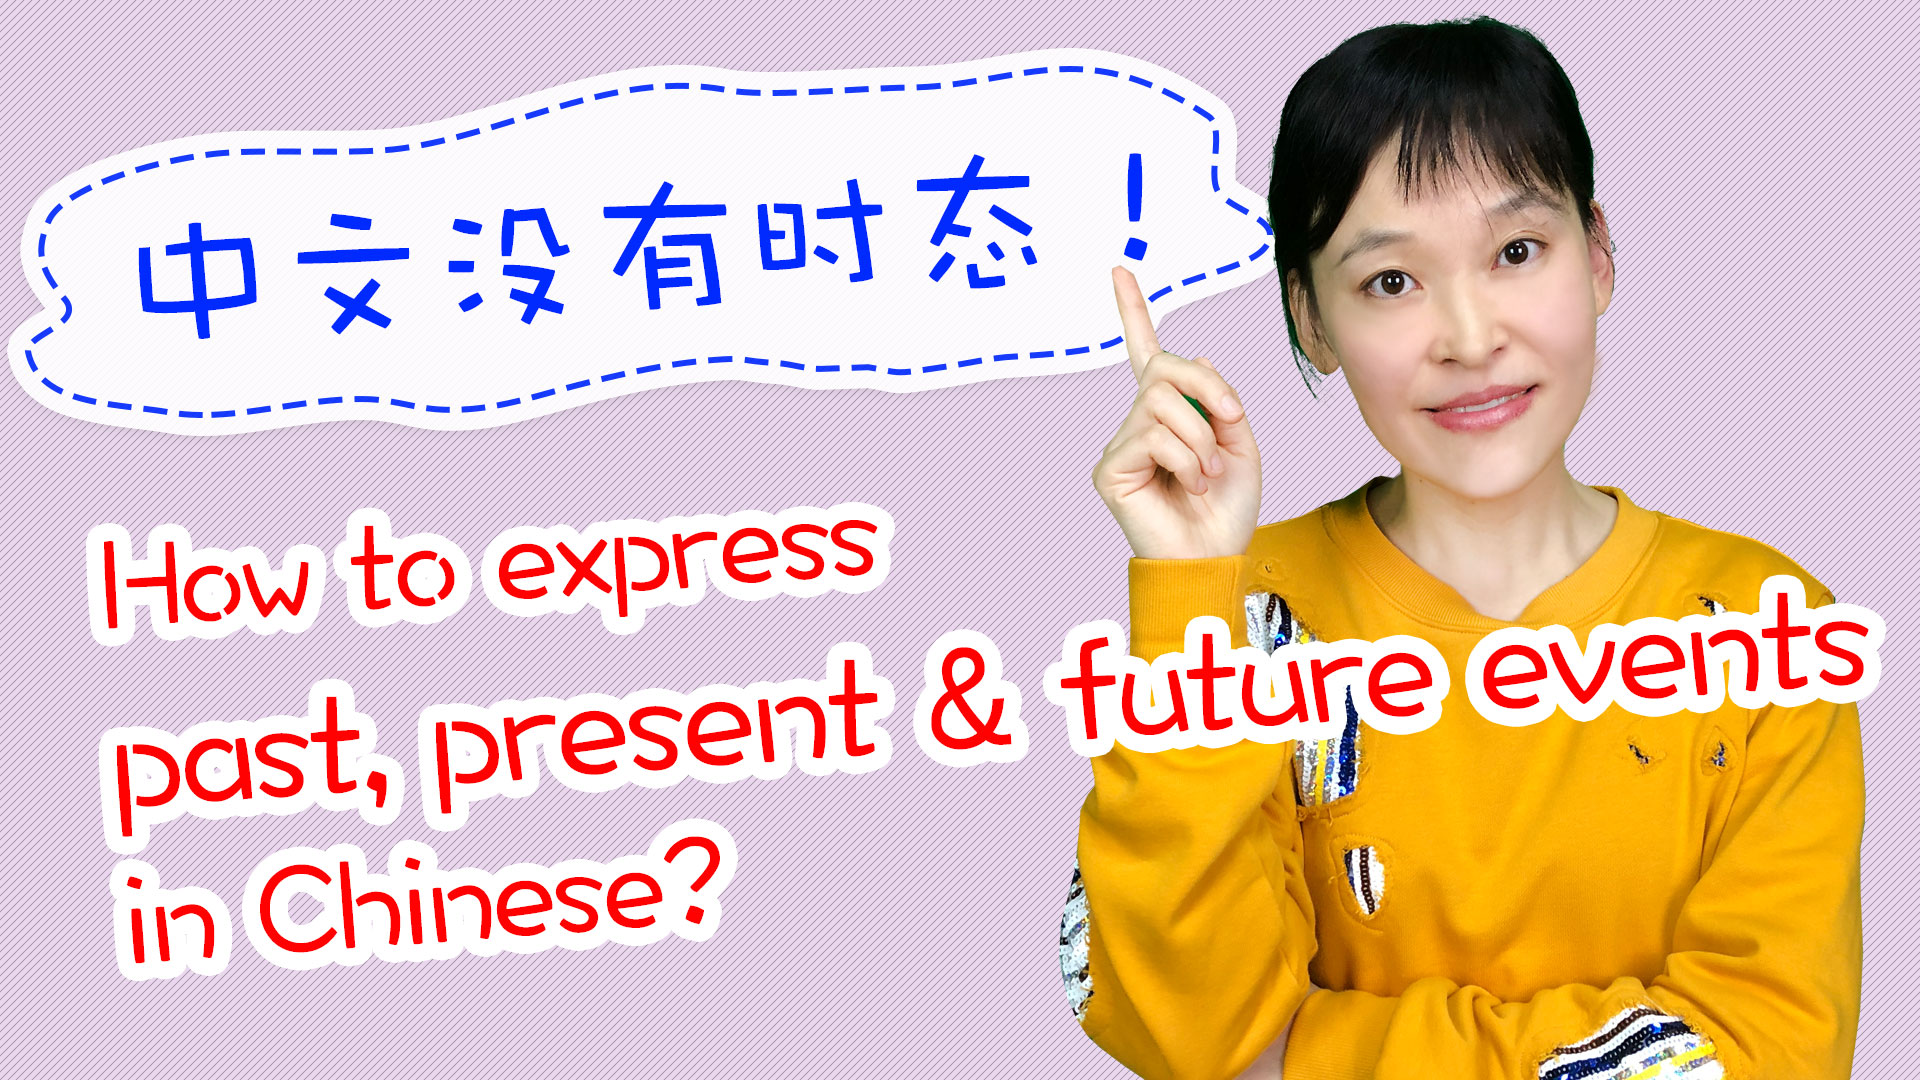 How to Express Past, Present or Future Events in Mandarin Chinese